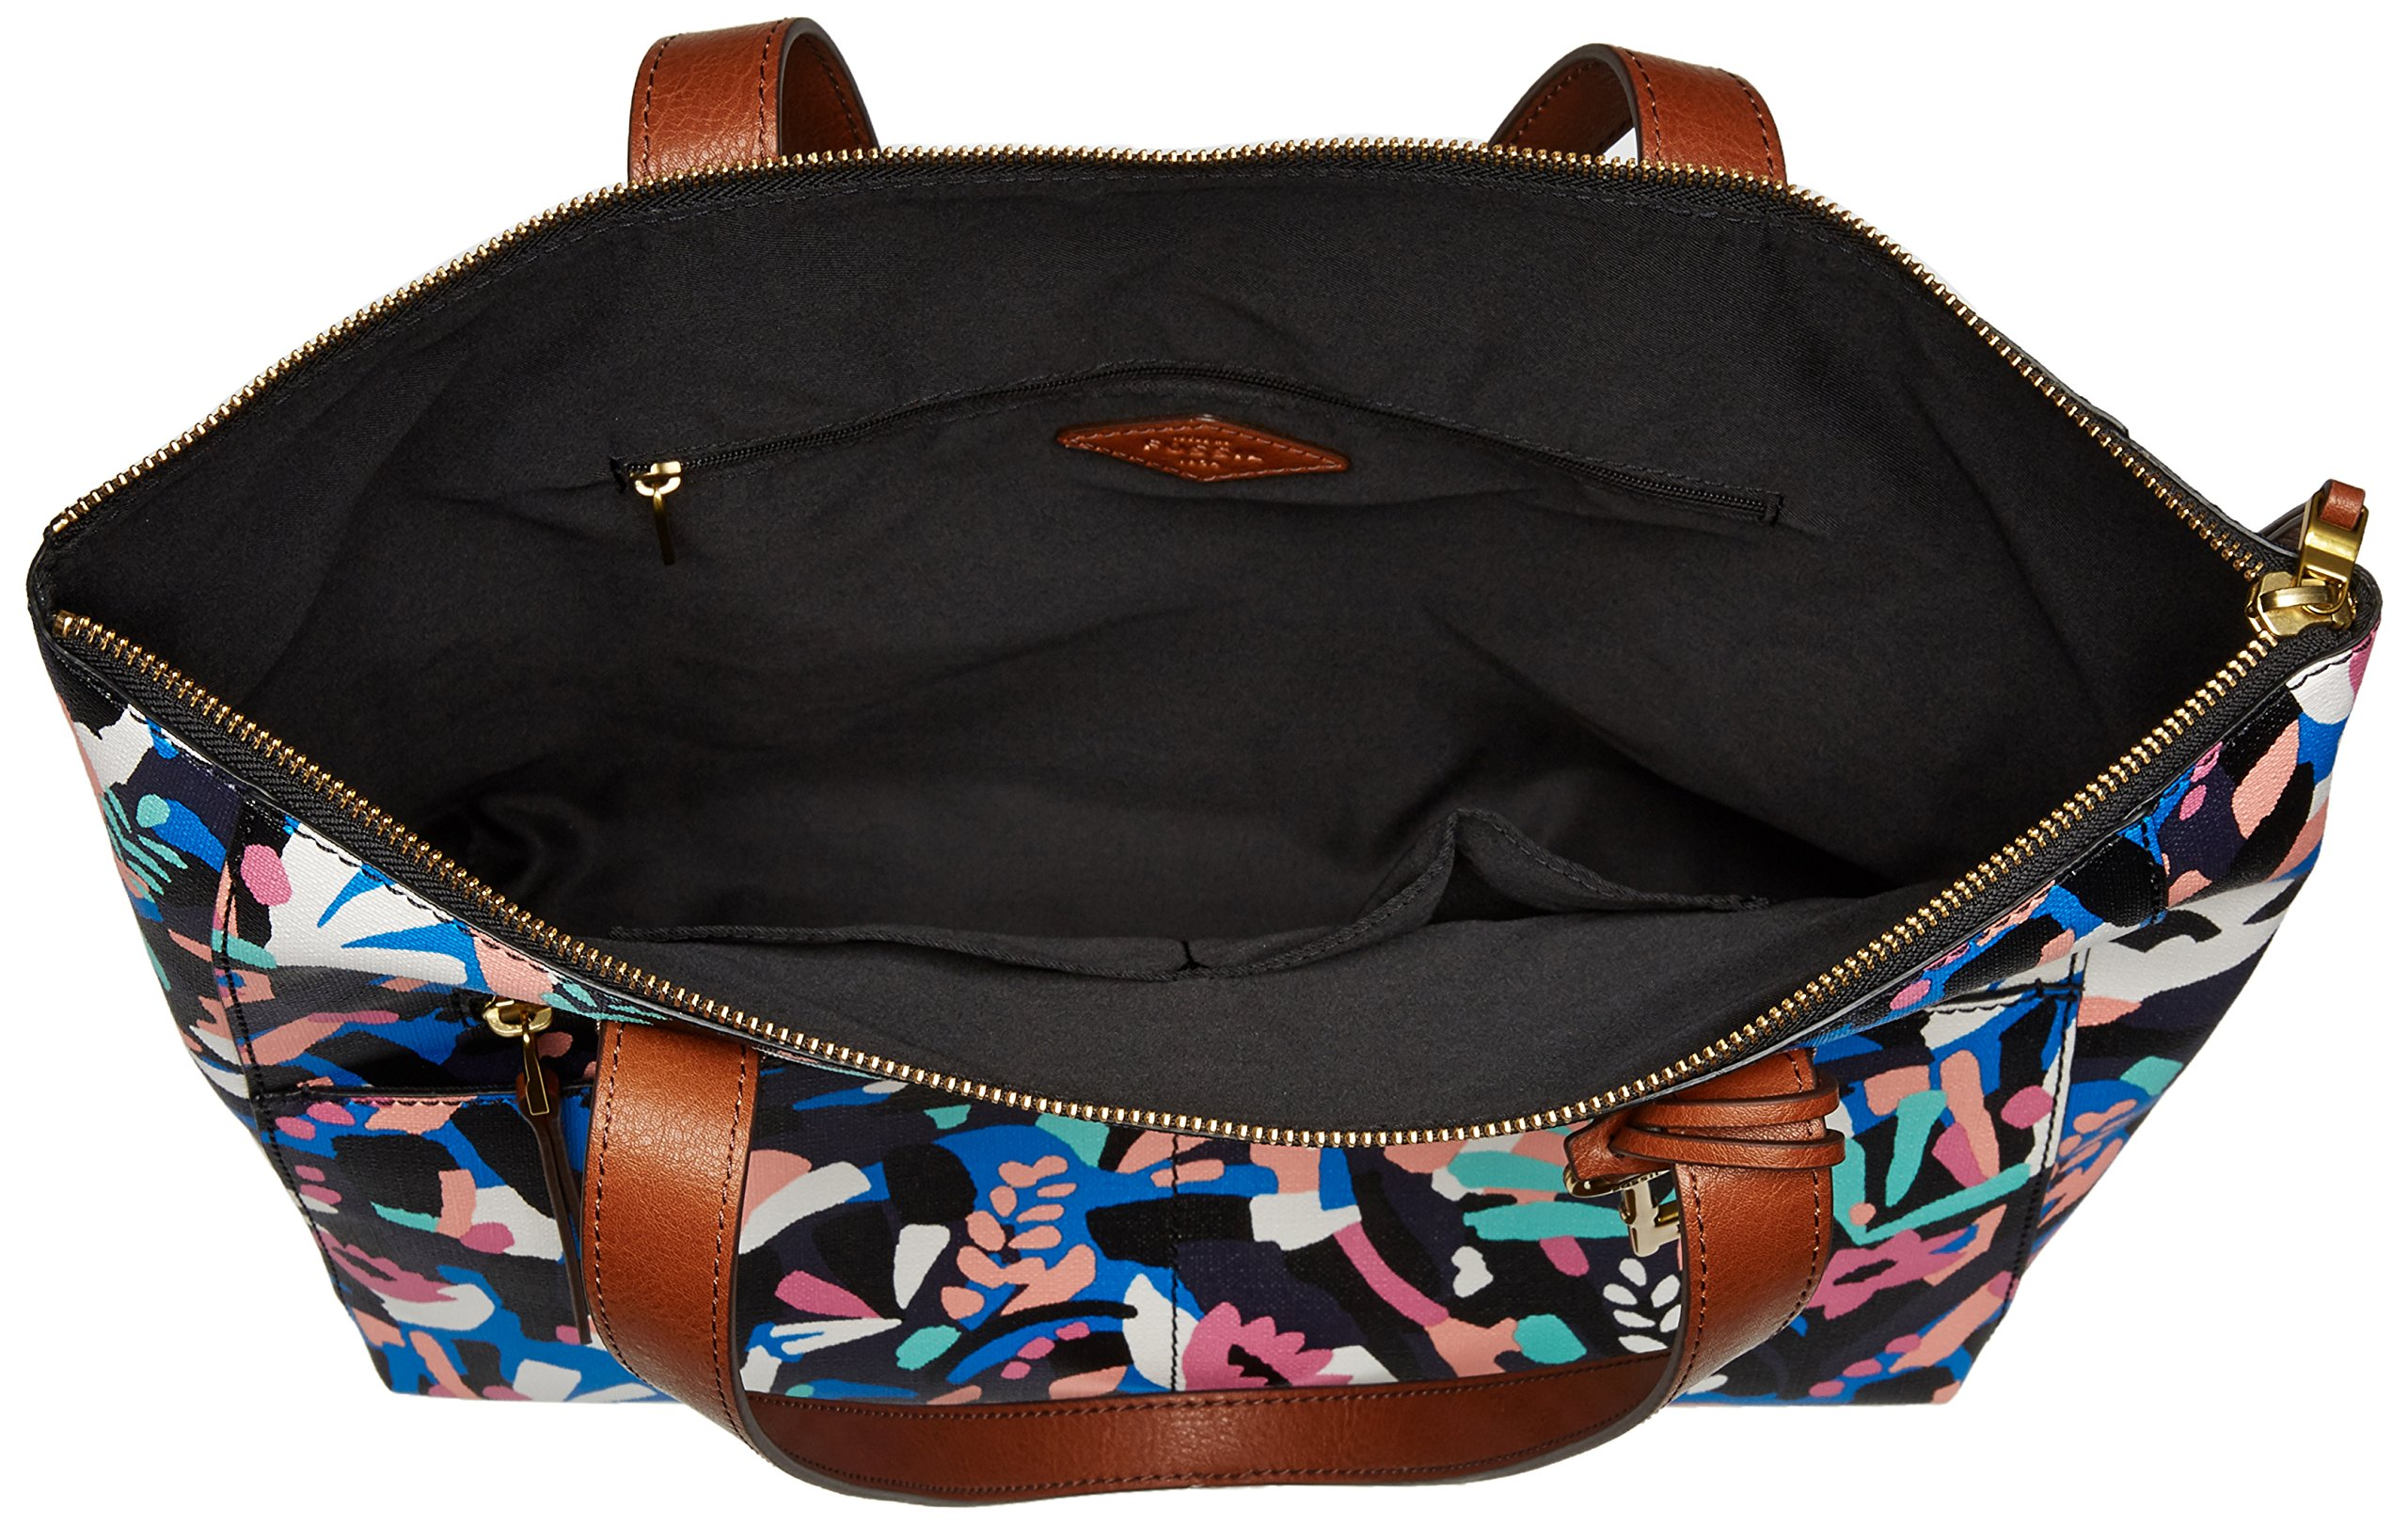 Fossil Fiona E/W Tote Bag, Black Floral,One Size by Fossil (Image #5)